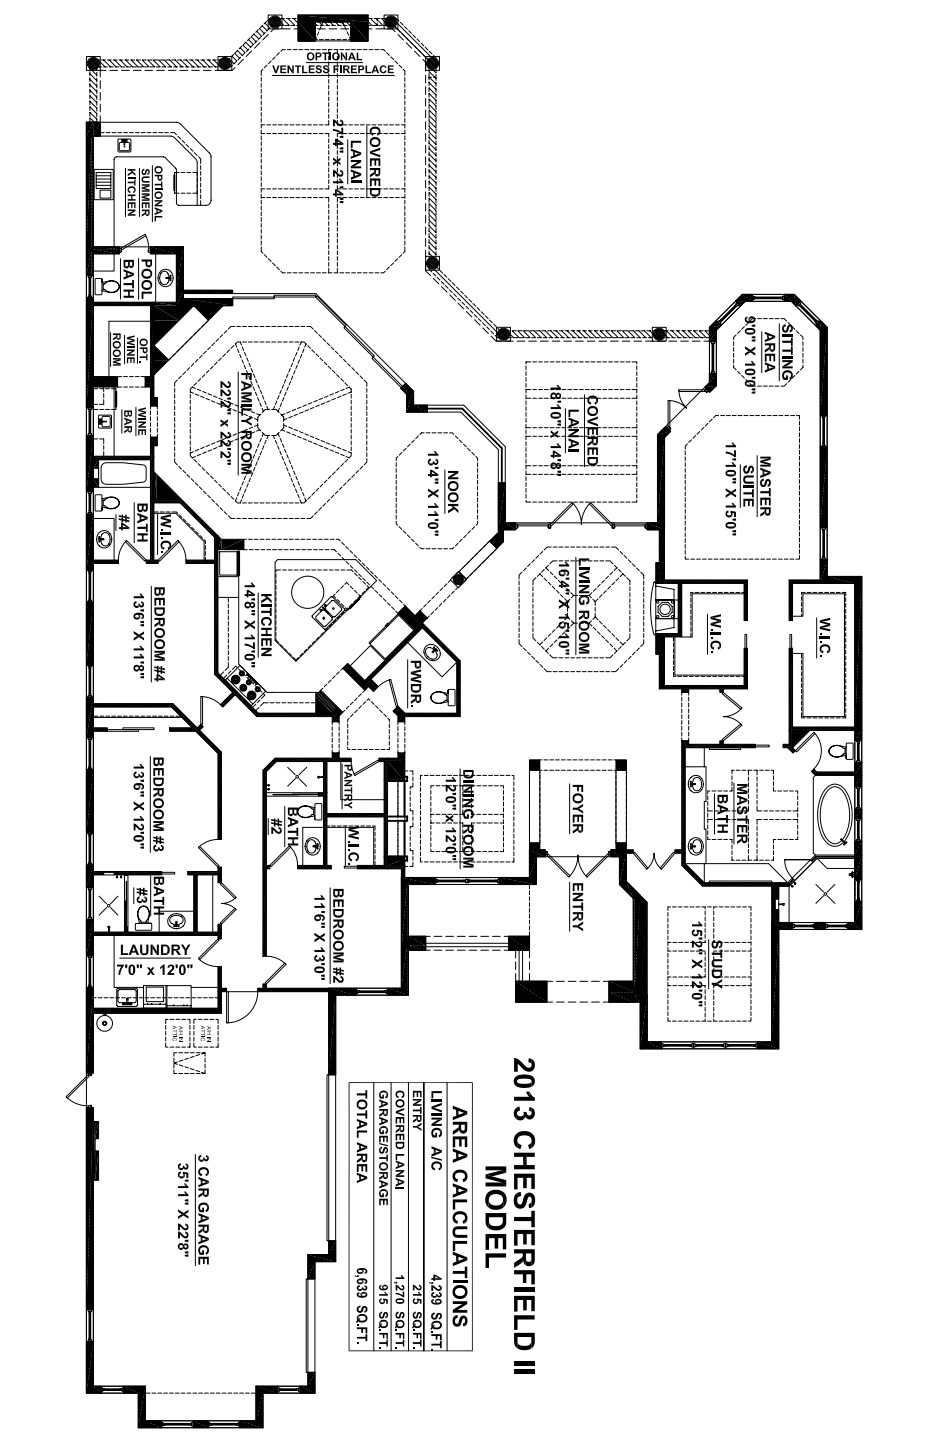 Chesterfield II Floorplan